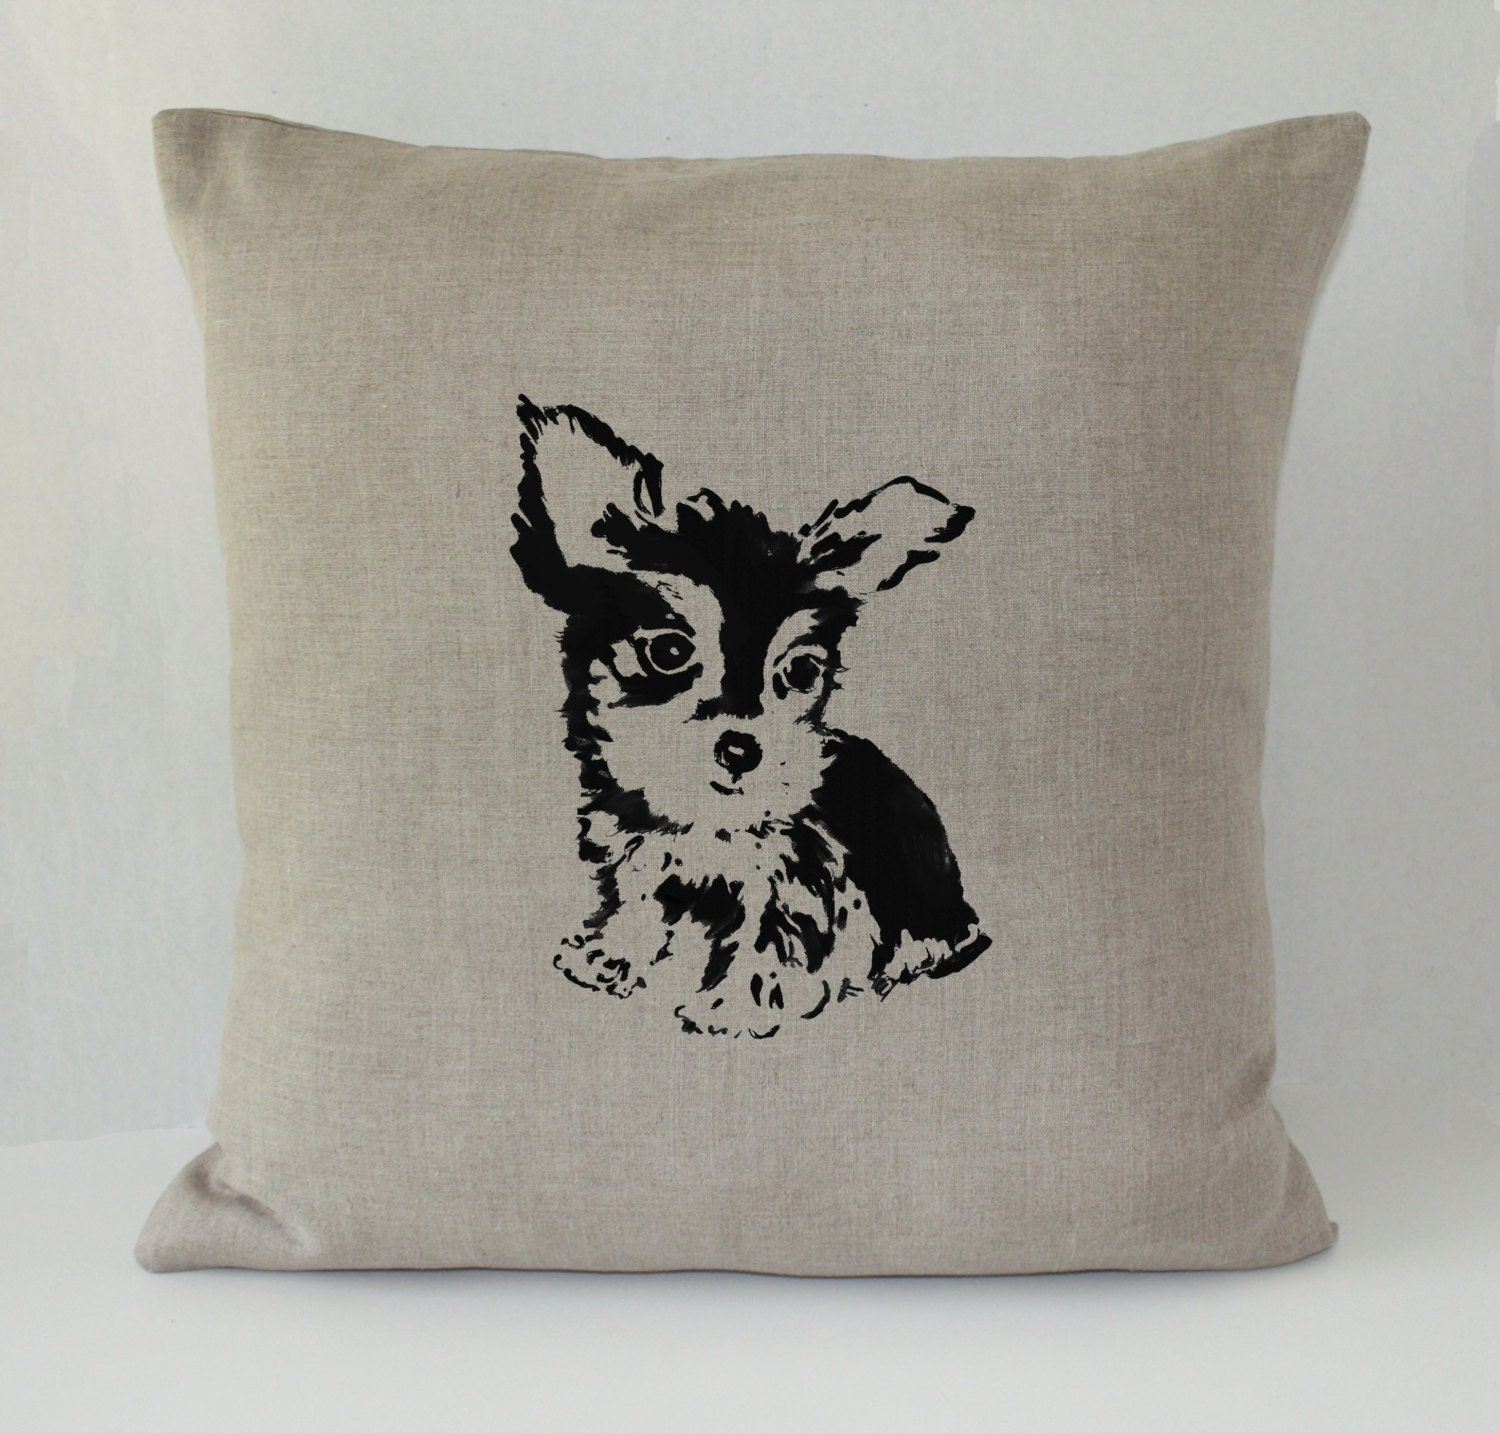 Decorative Pillows Dog : Yorkie Dog Decorative Throw Pillow Cover Irish Linen 20x20